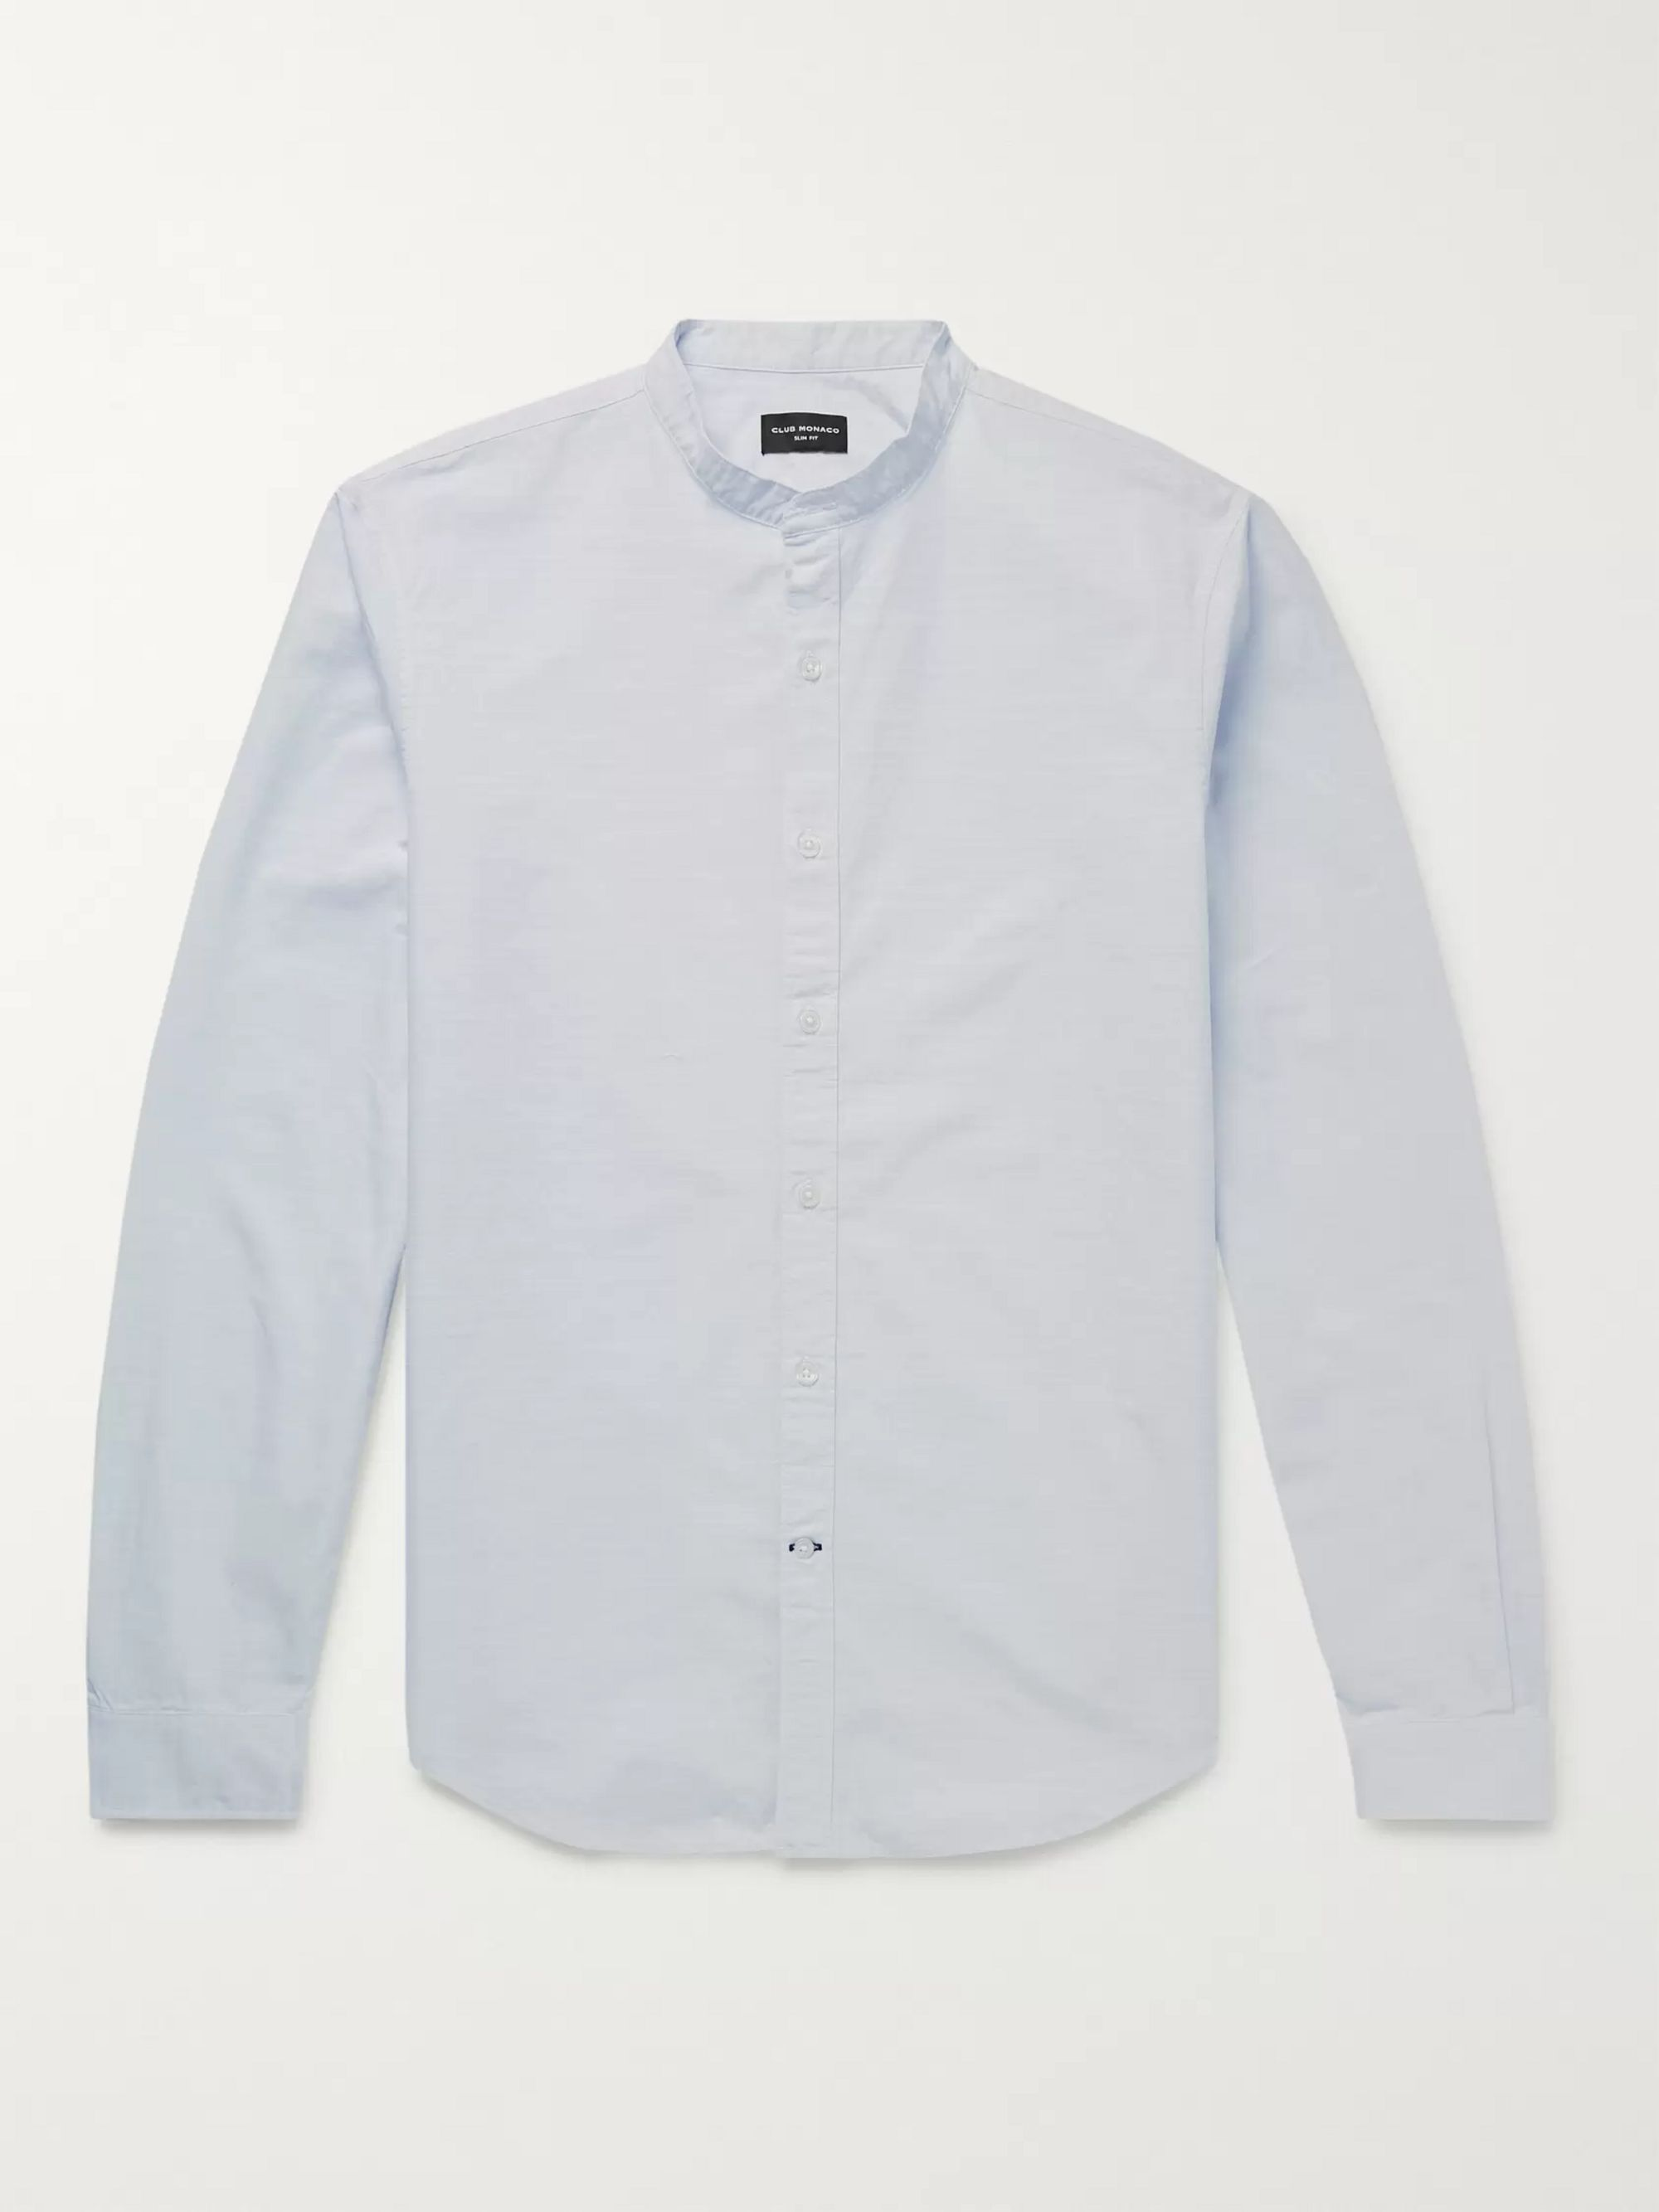 Club Monaco Slim-Fit Grandad-Collar Slub Cotton Shirt